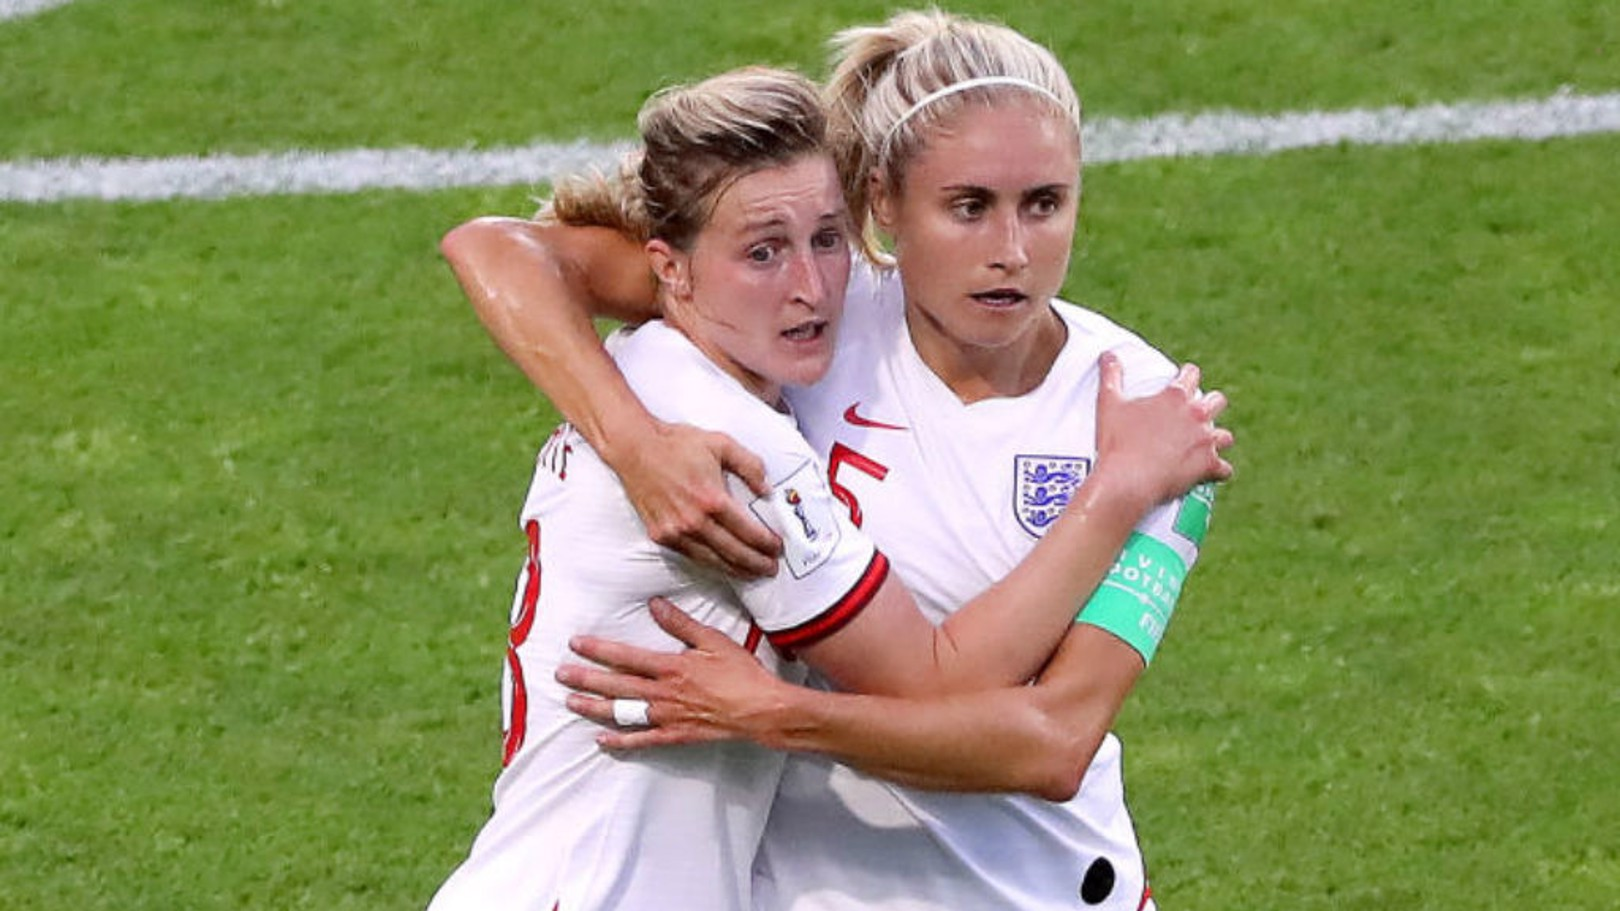 Houghton and White withdrawn from England squad